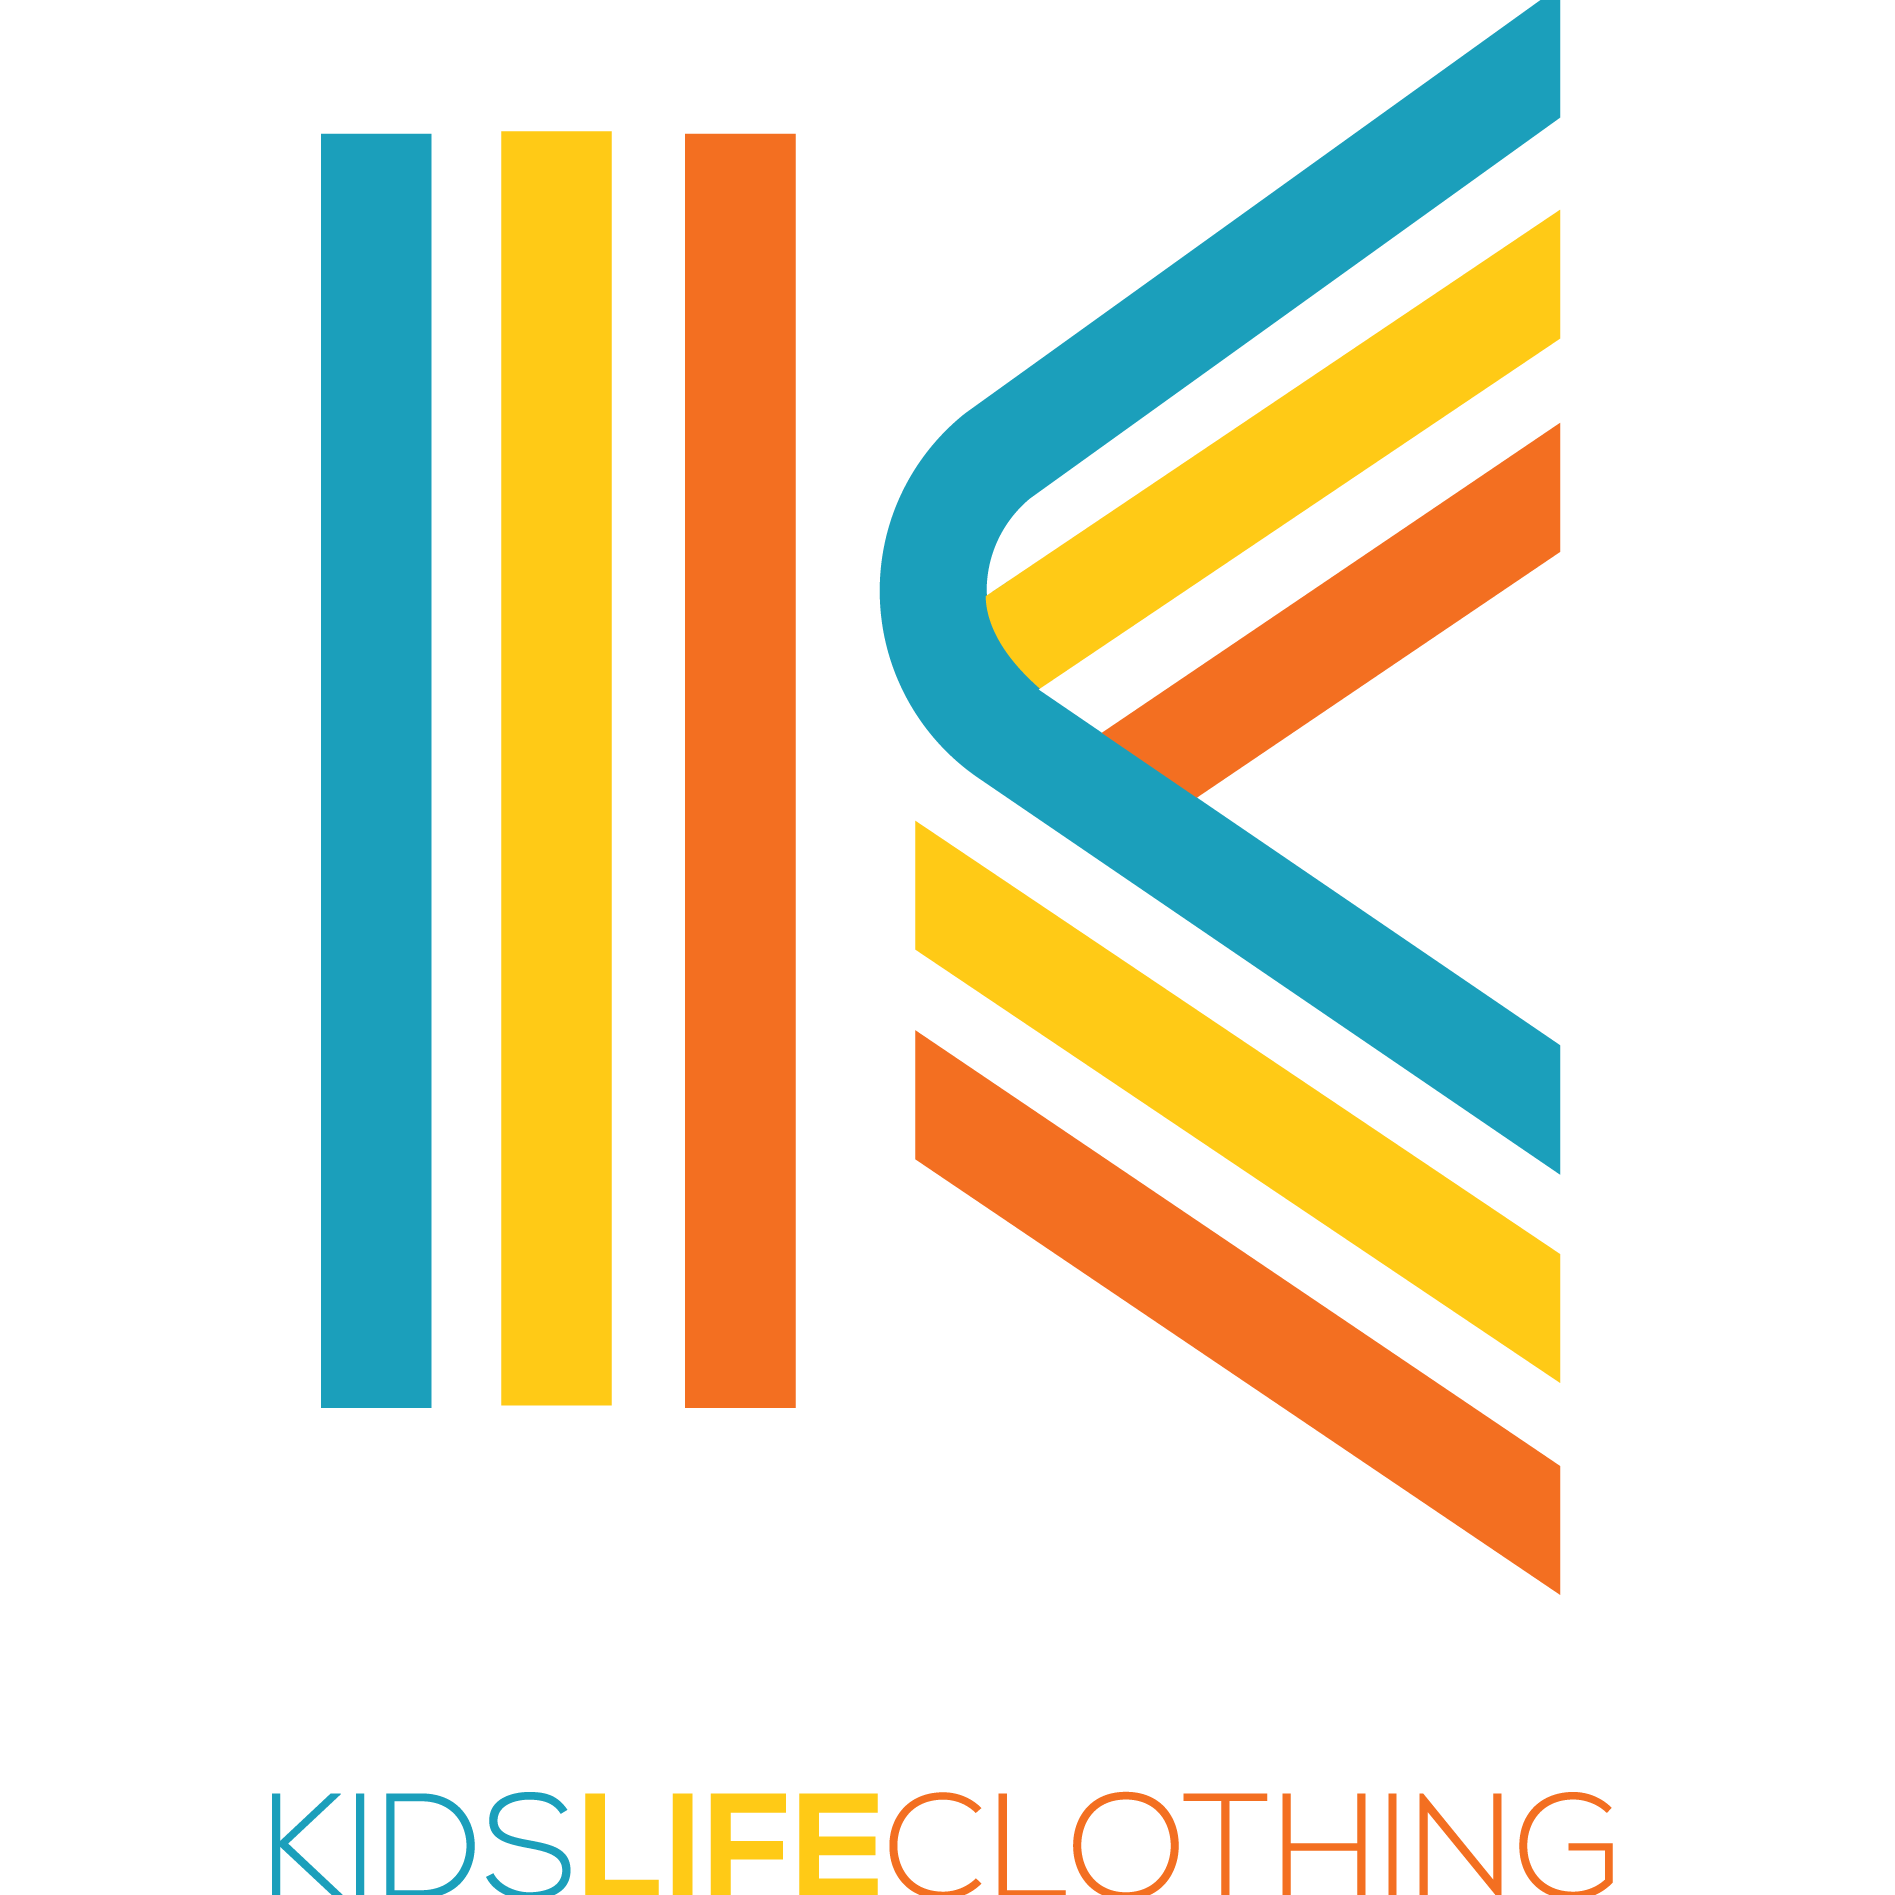 Kids Life Clothing internships in Central London, London